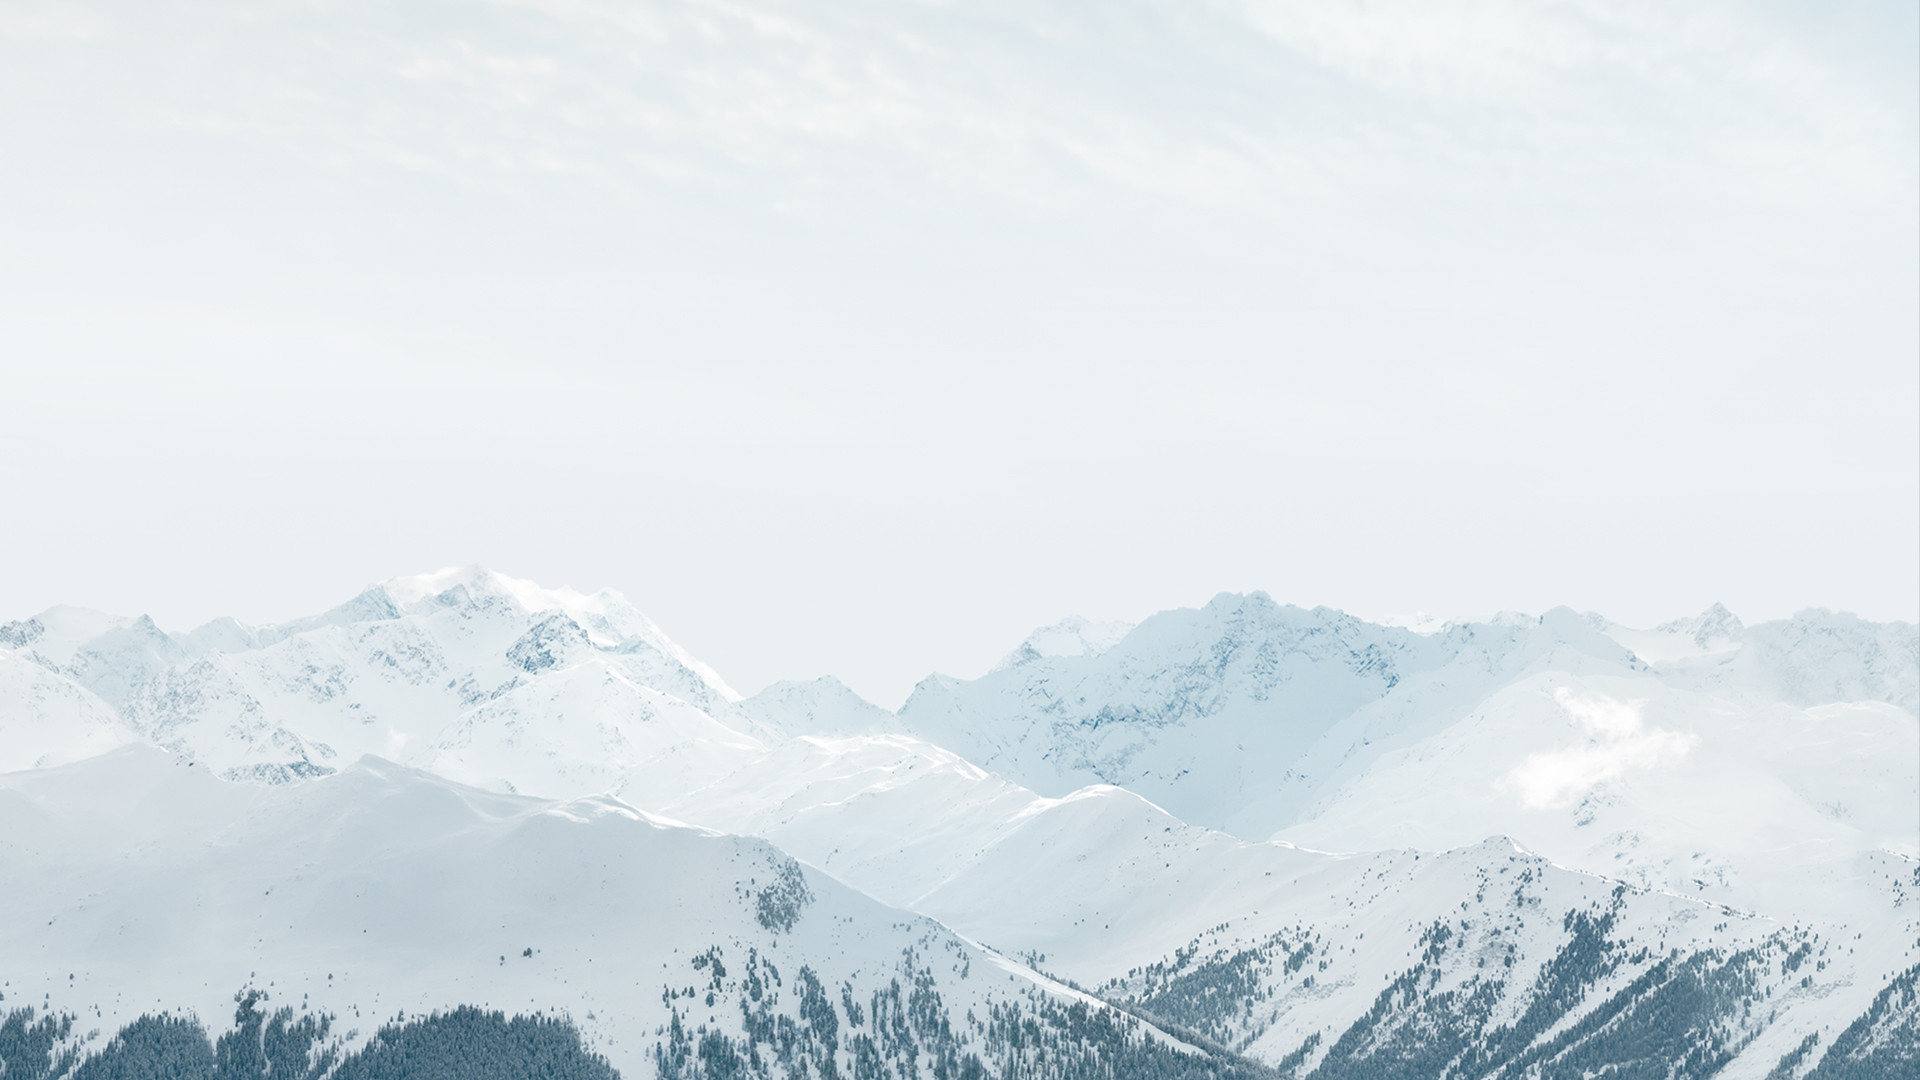 iOS 8 wallpapers